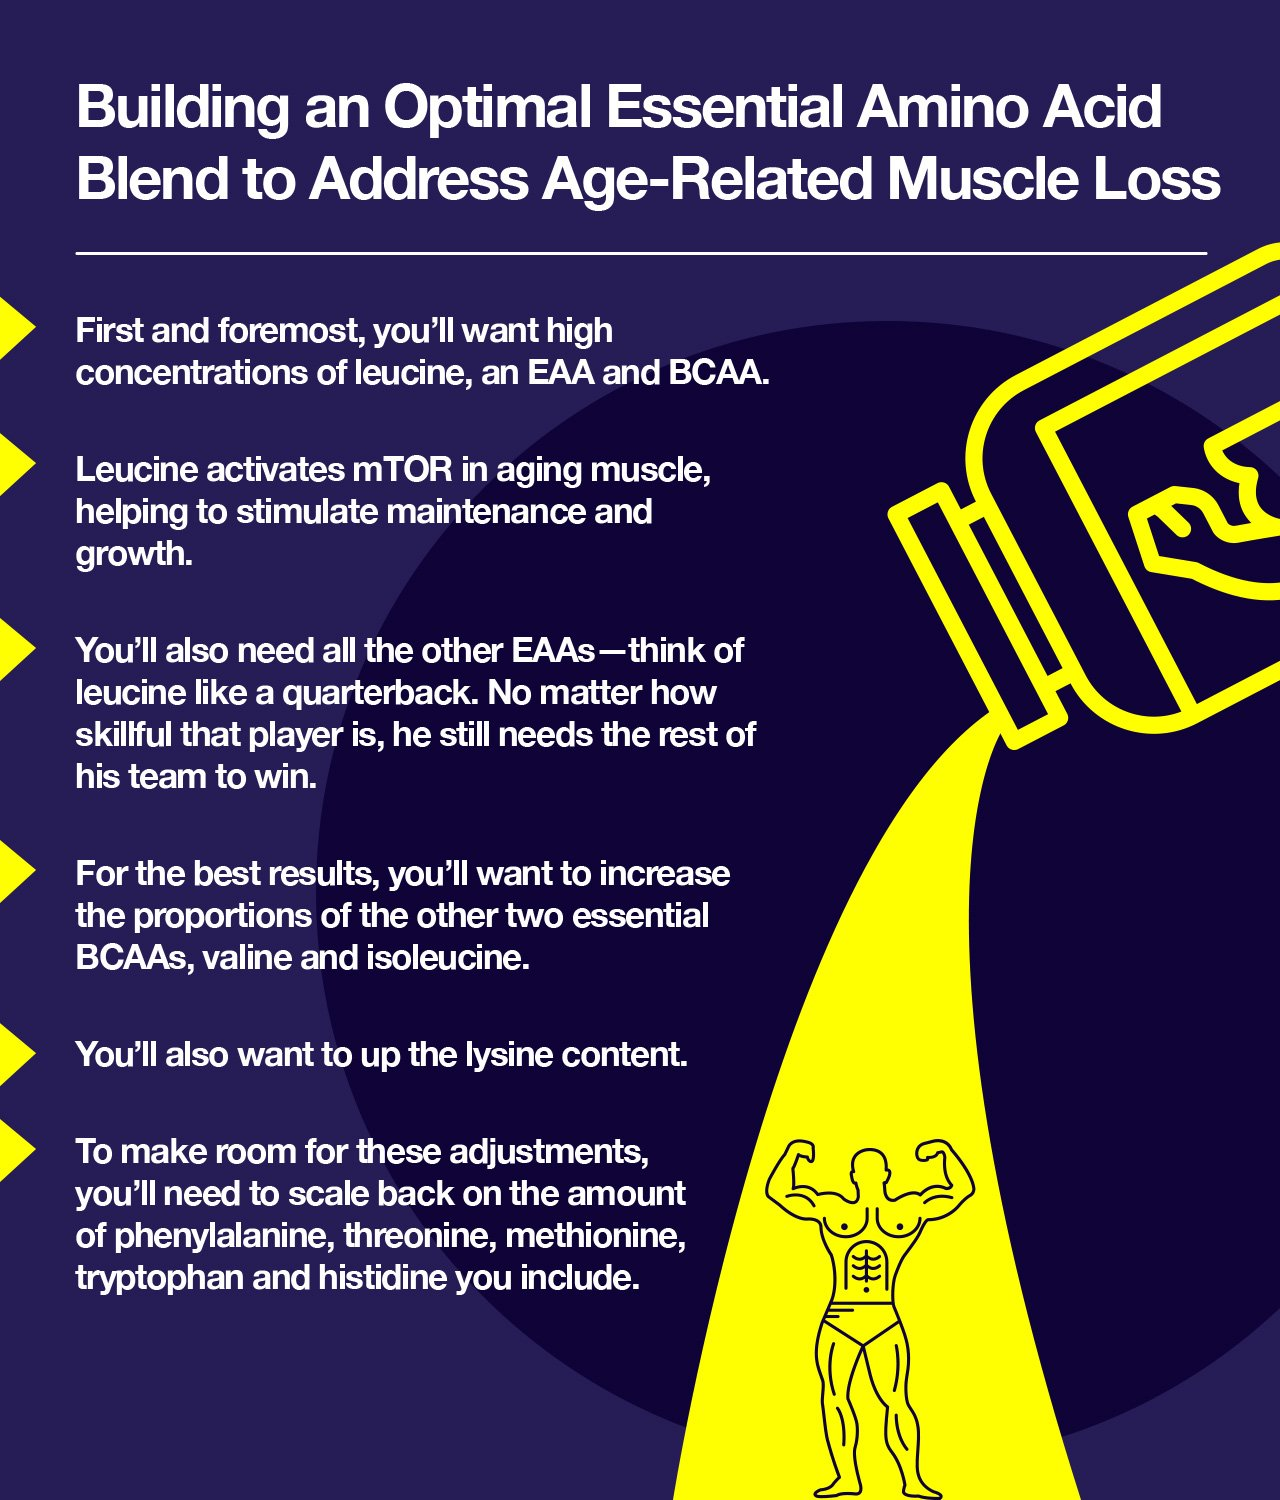 Essential Amino Acids For Muscle Loss